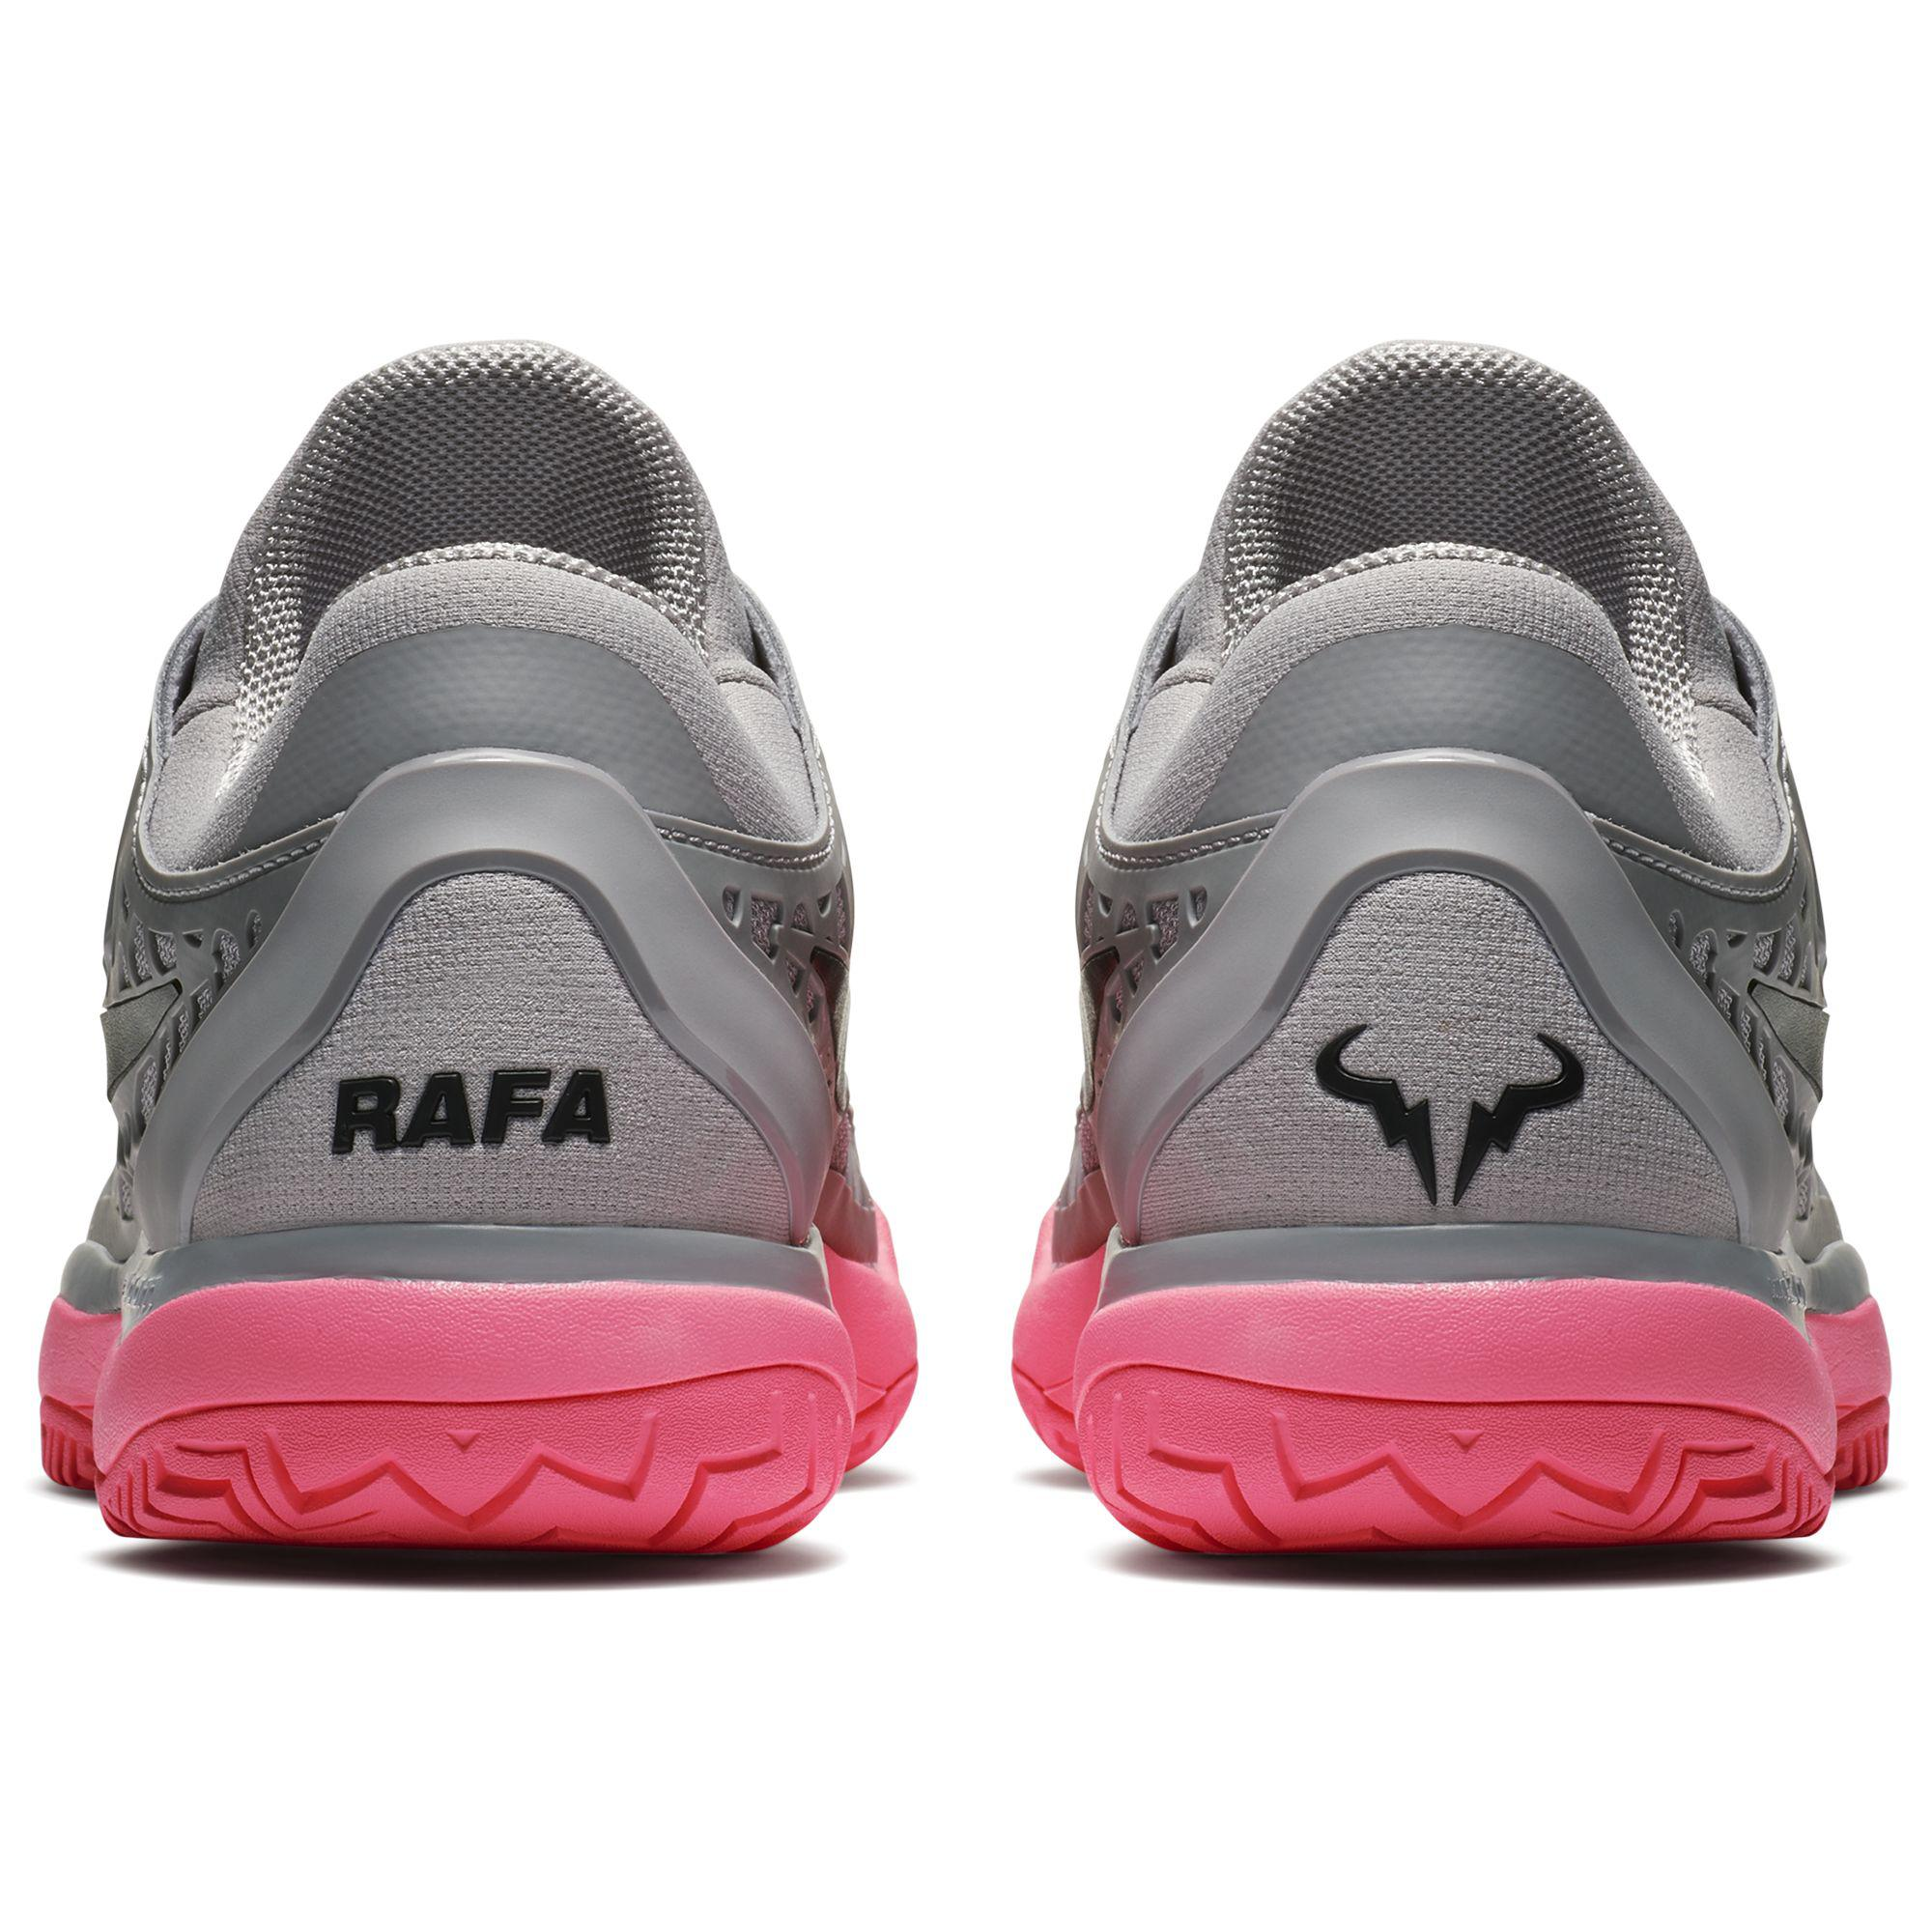 huge selection of acfee d7847 Nike Mens Air Zoom Cage 3 Rafa Tennis Shoes - Grey Sunset Pulse